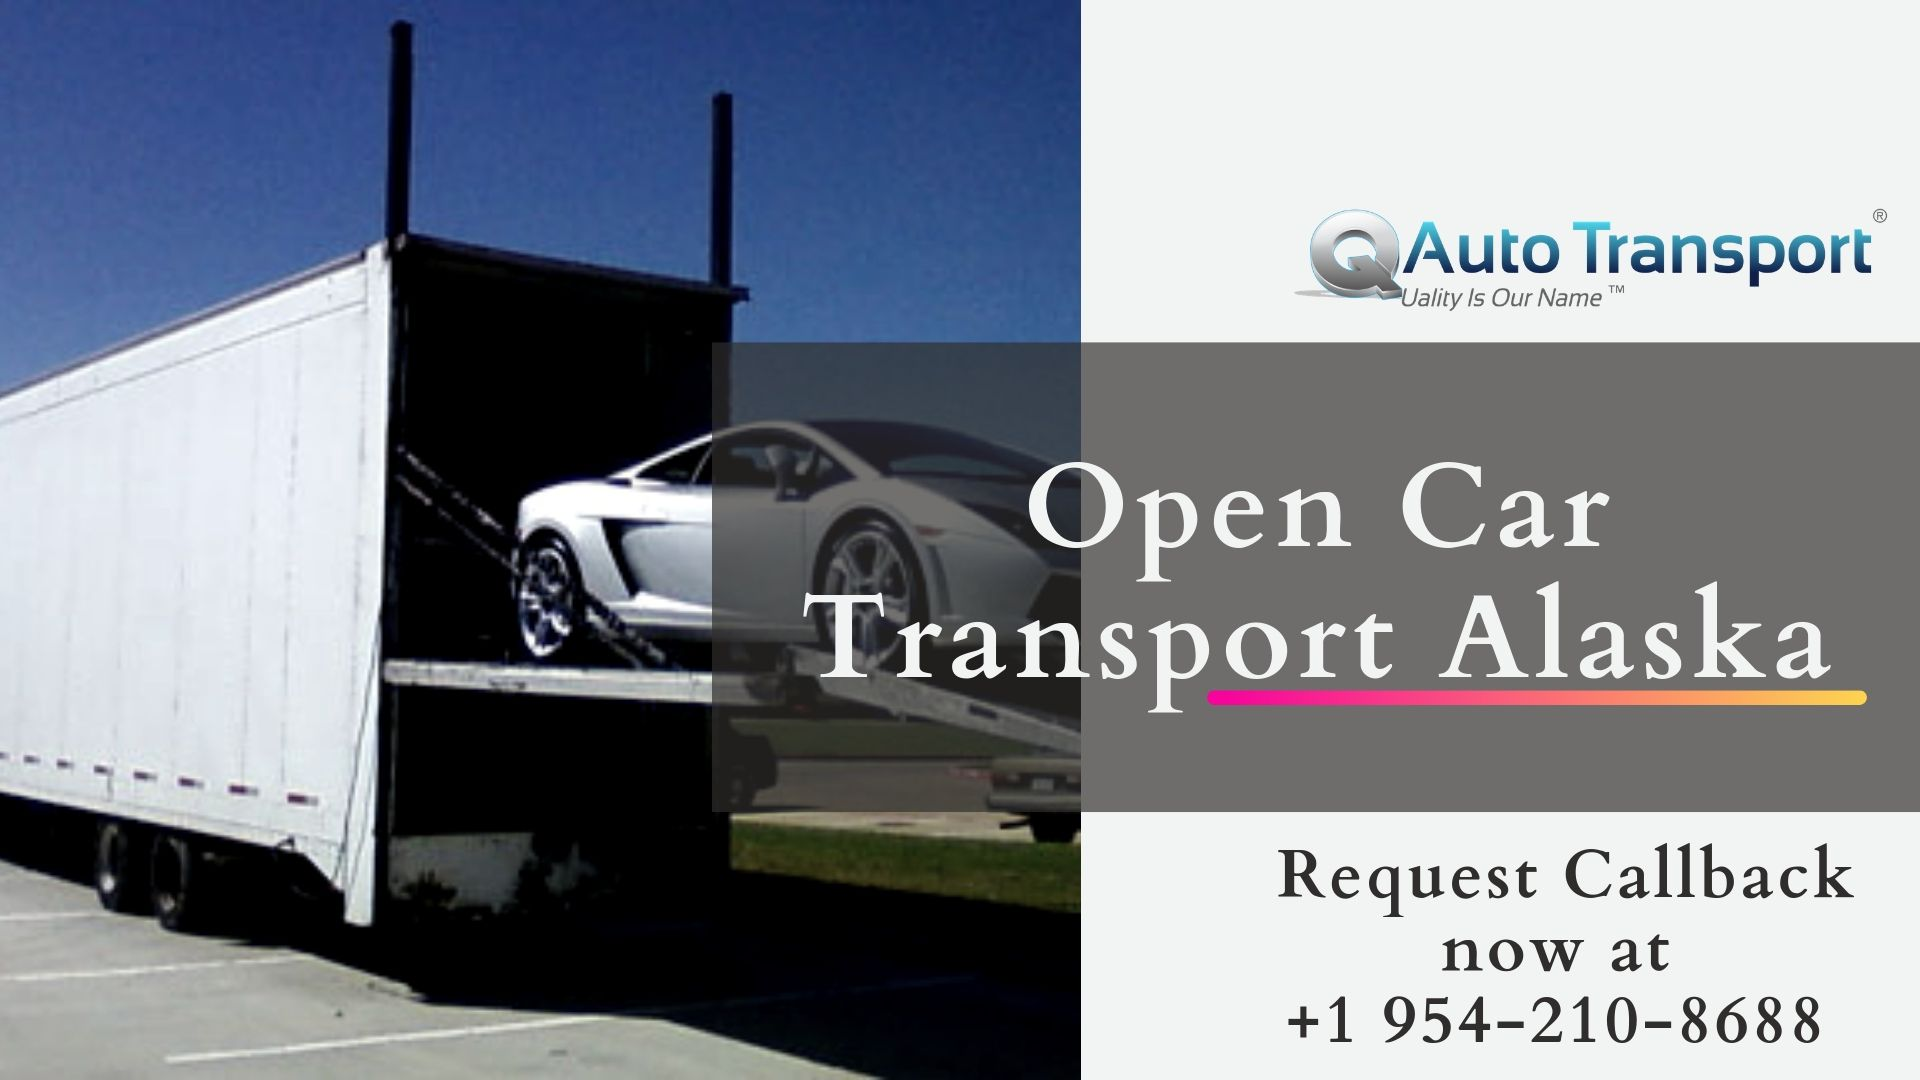 Open Car Transport Alaska